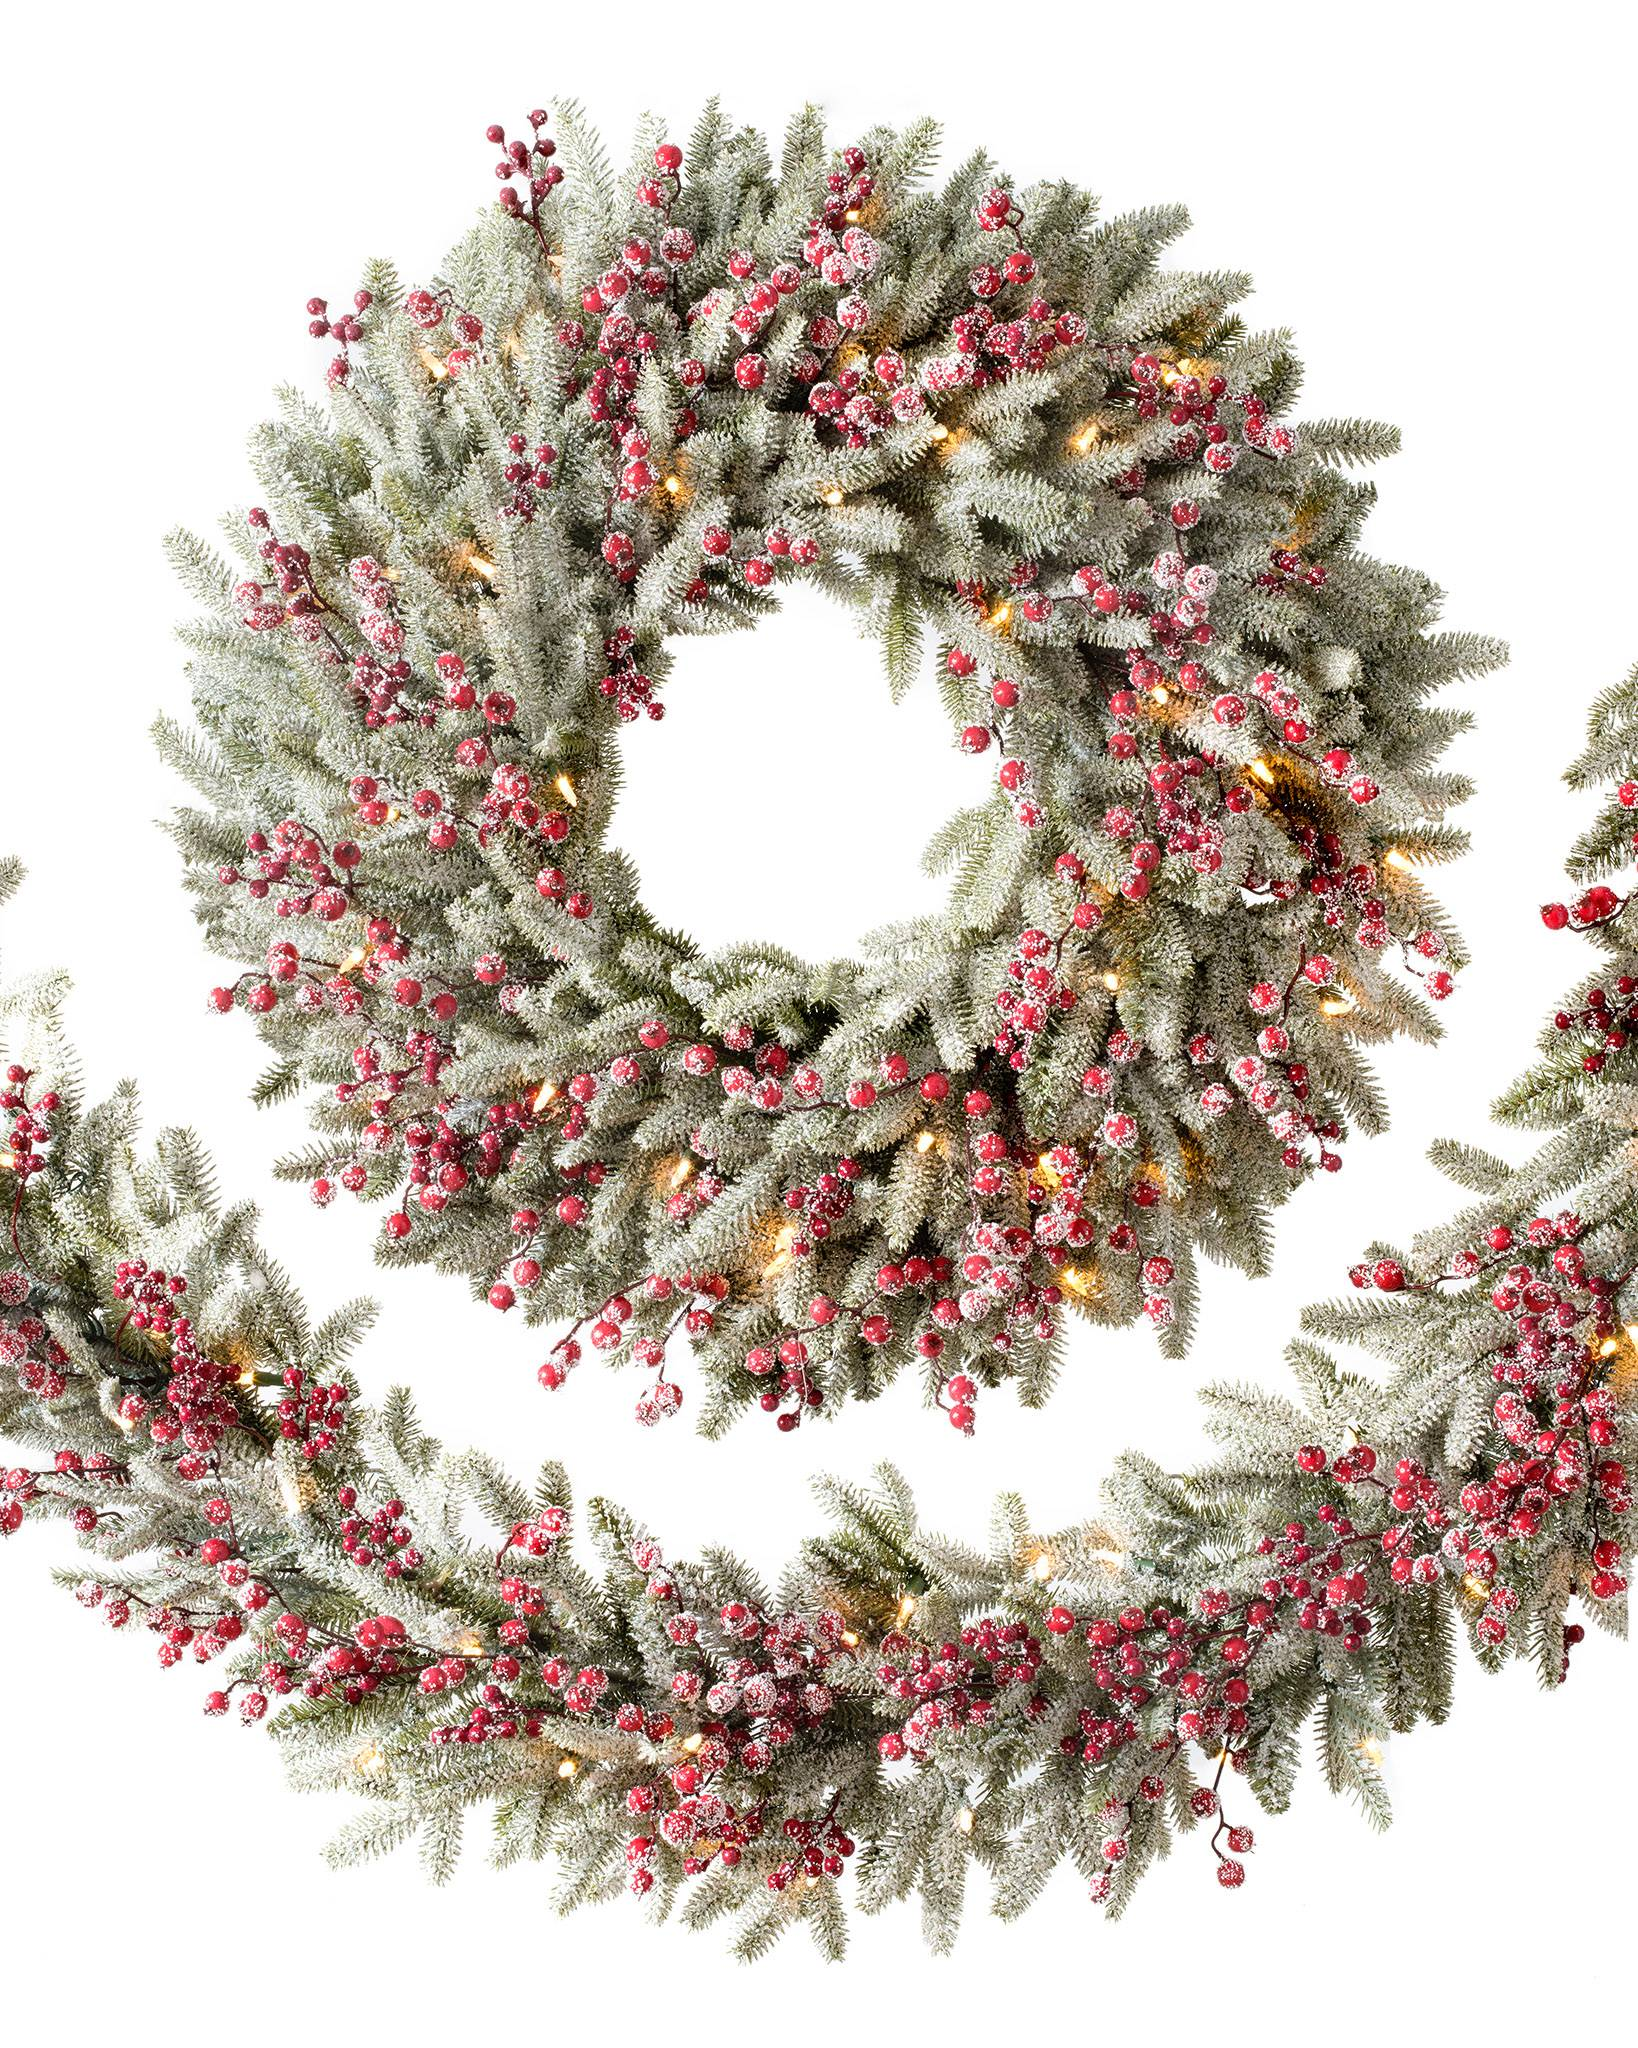 artificial image all decorations wreath top christmas ideas celebration pinterest wreaths about decor tree decorated